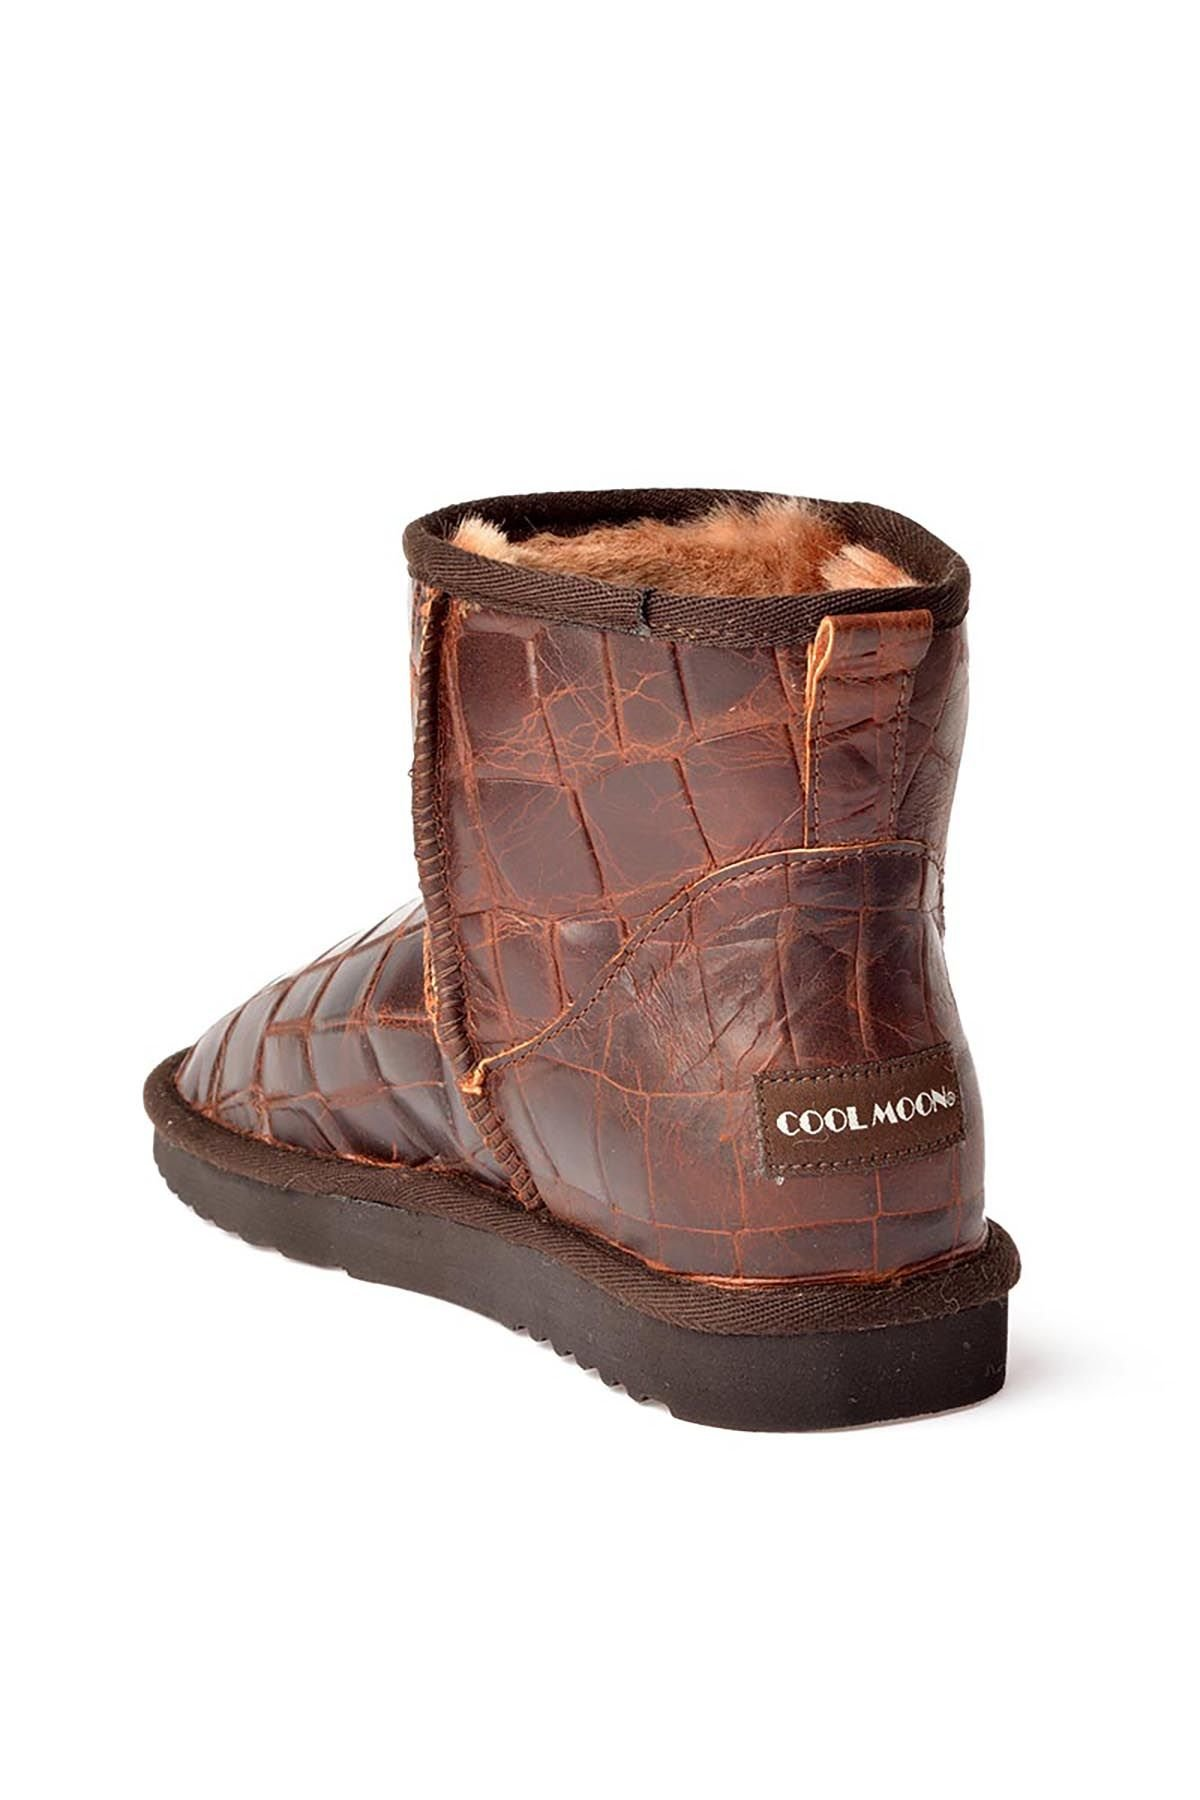 Cool Moon Women Boots From Genuine Fur With Crocodile Pattern 990153 Brown